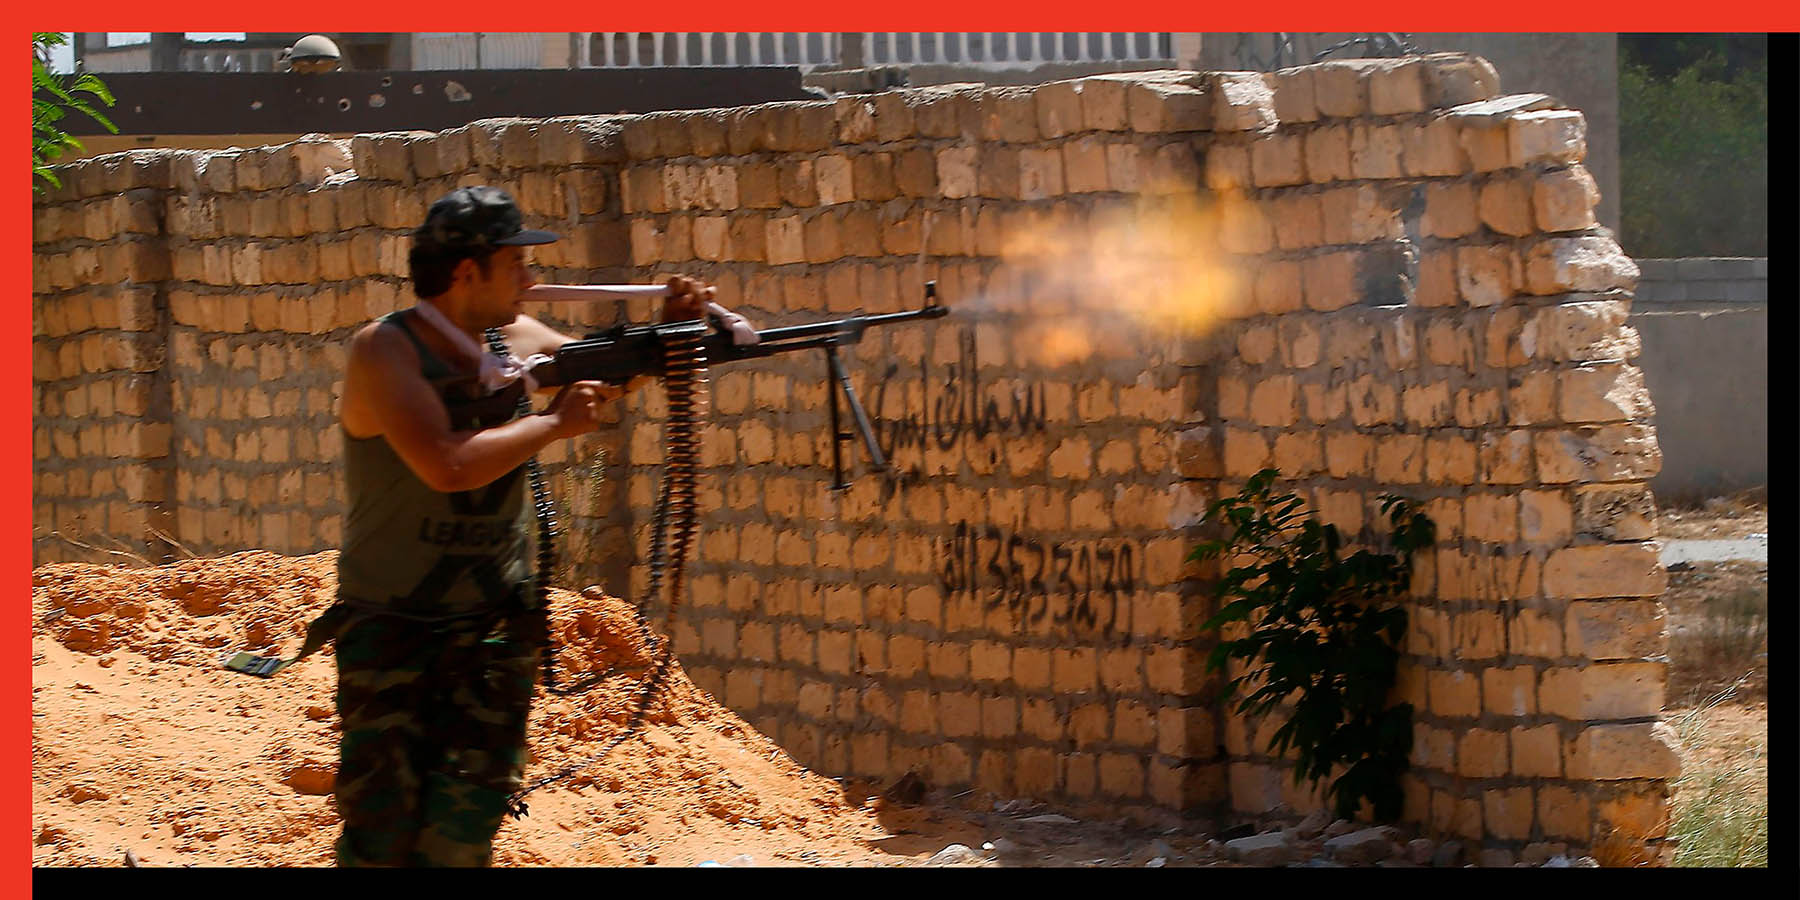 A fighter loyal to the Libyan Government of National Accord fires his gun during clashes with forces loyal to strongman Khalifa Haftar in the Tripoli suburb of Ain Zara on Sept. 7.